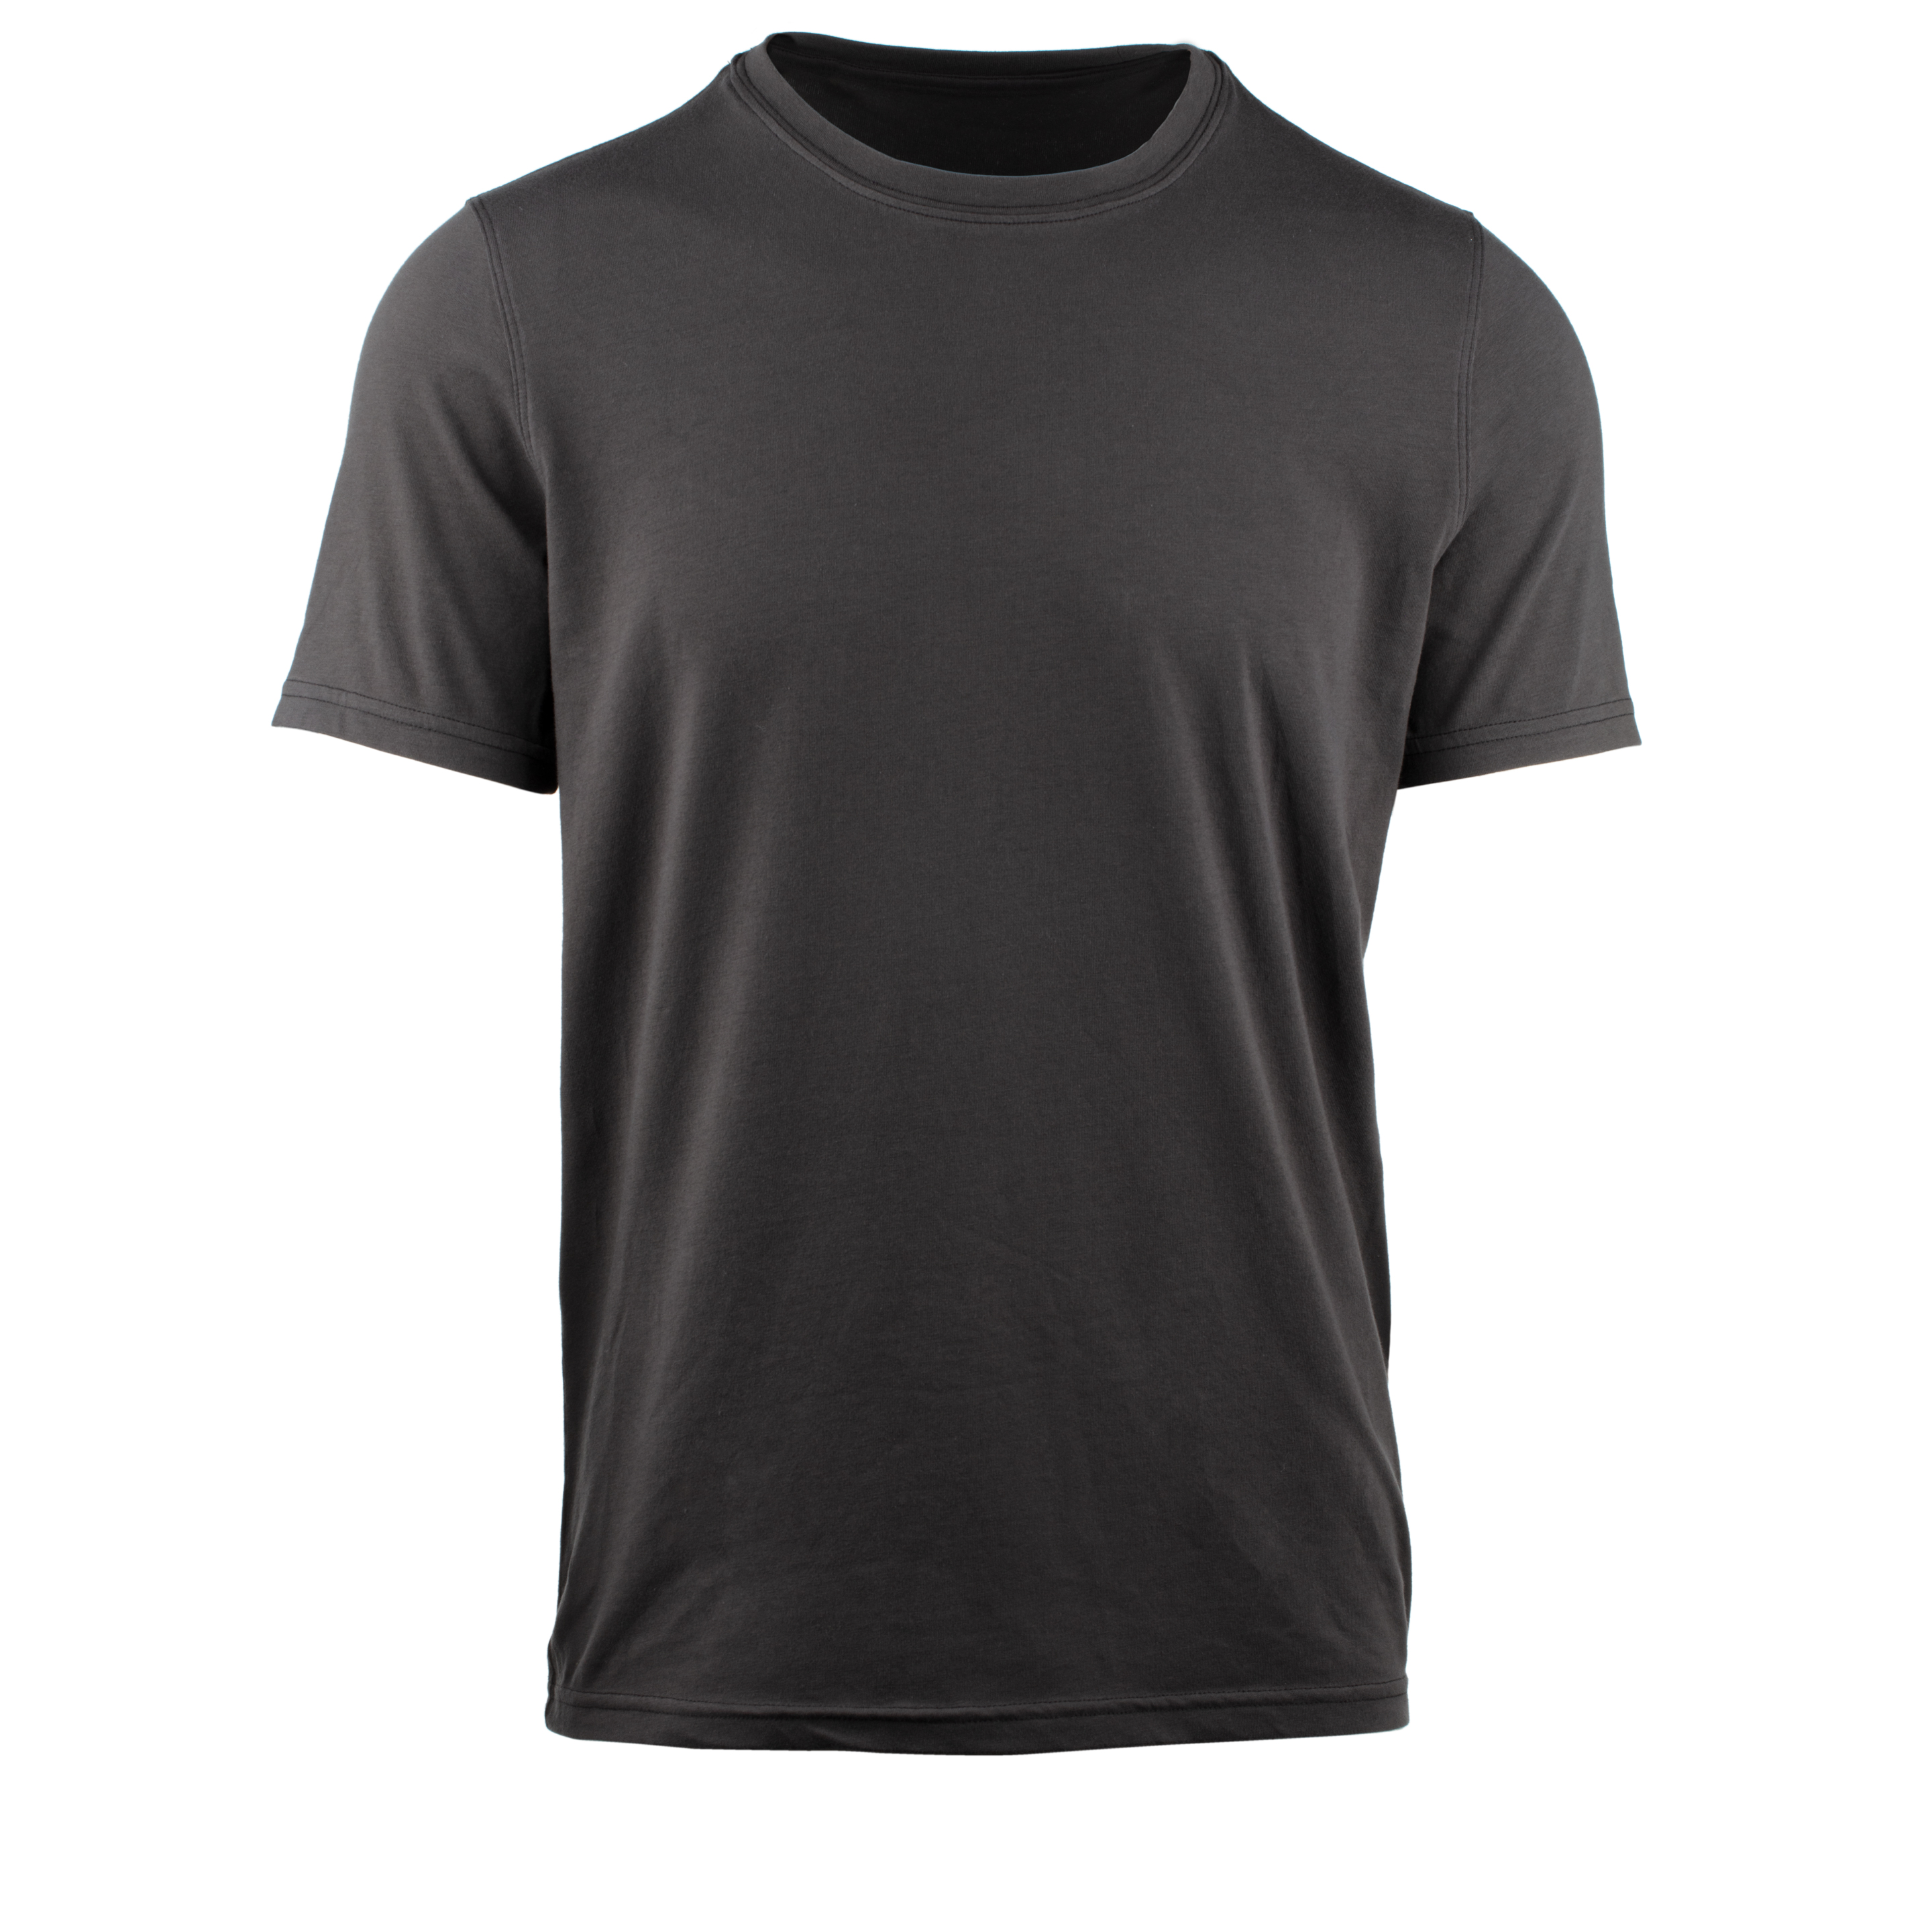 StringKing Apparel Casual T Shirt Light Black Gallery Front View